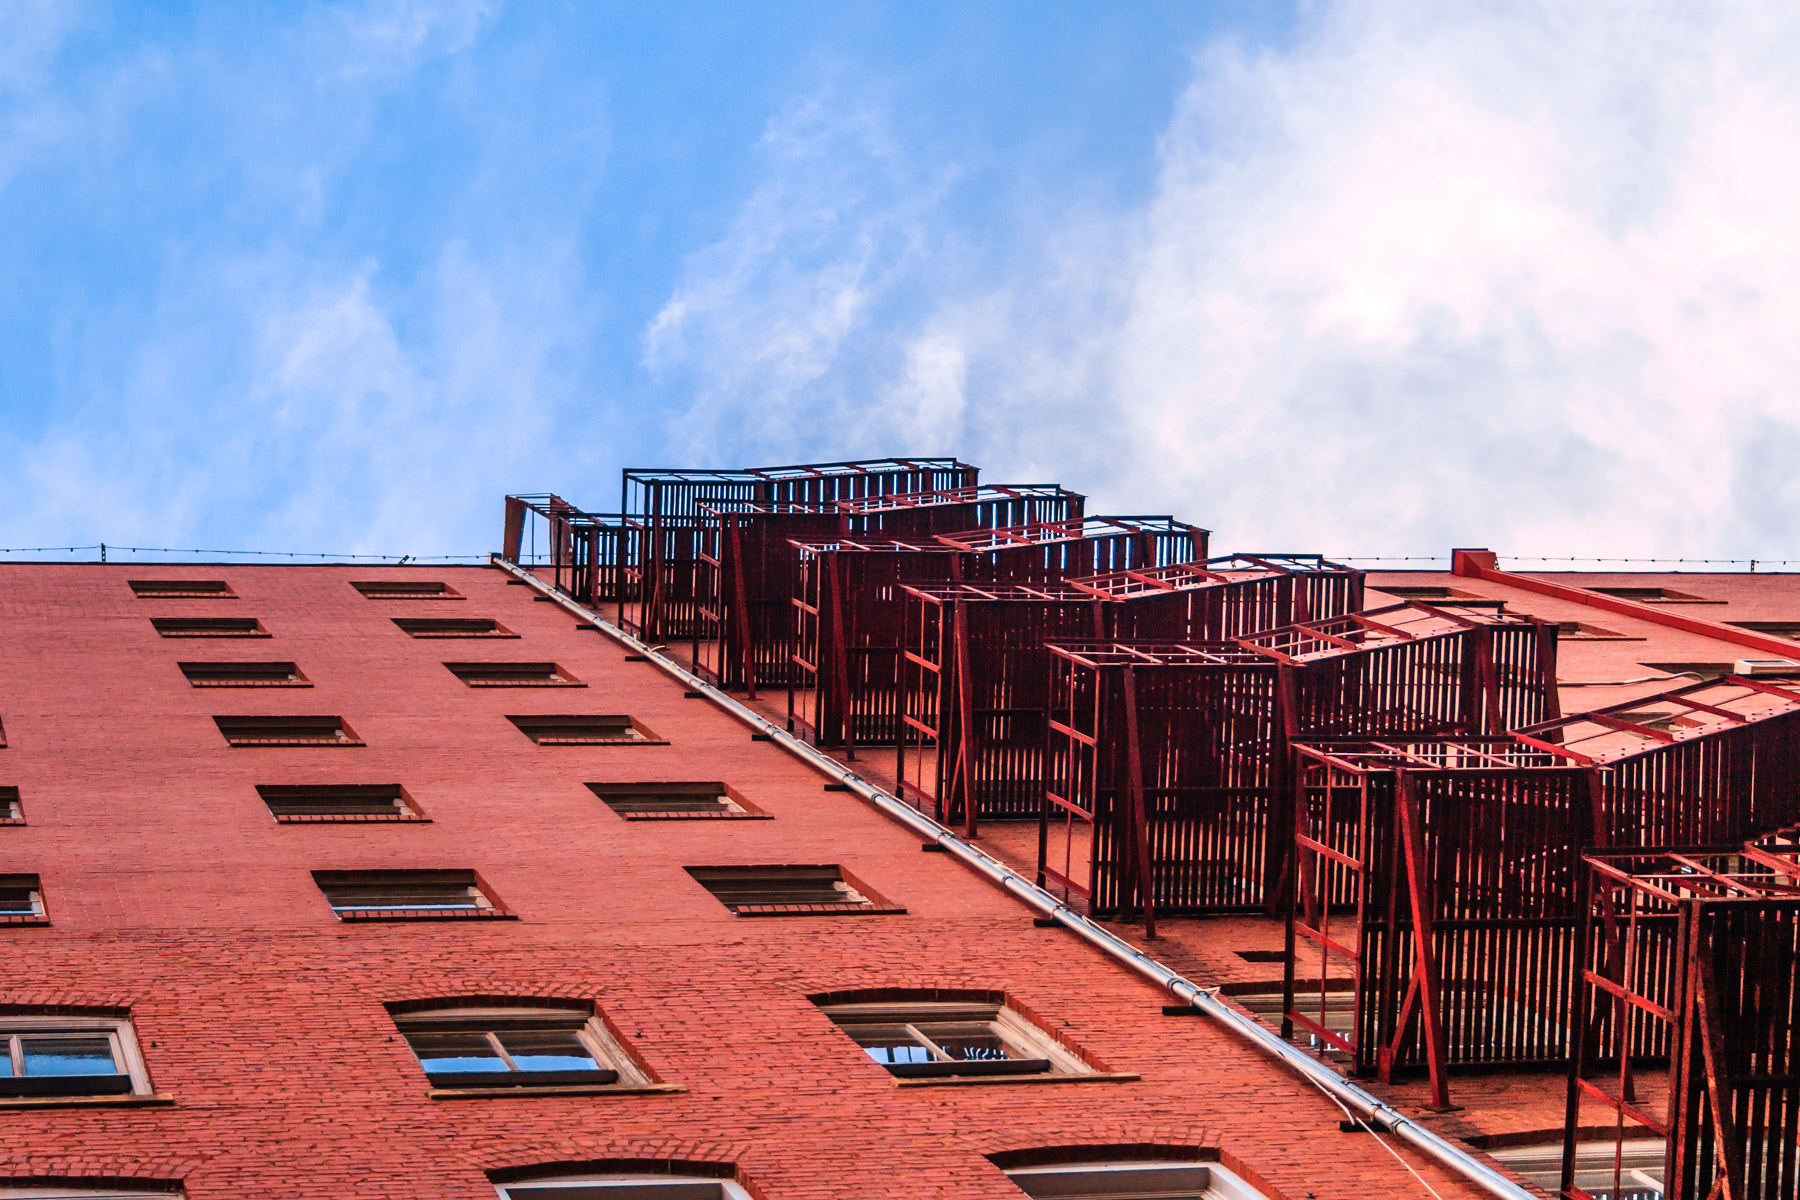 A fire escape climbs up the side of a building in Wichita Falls, Texas.